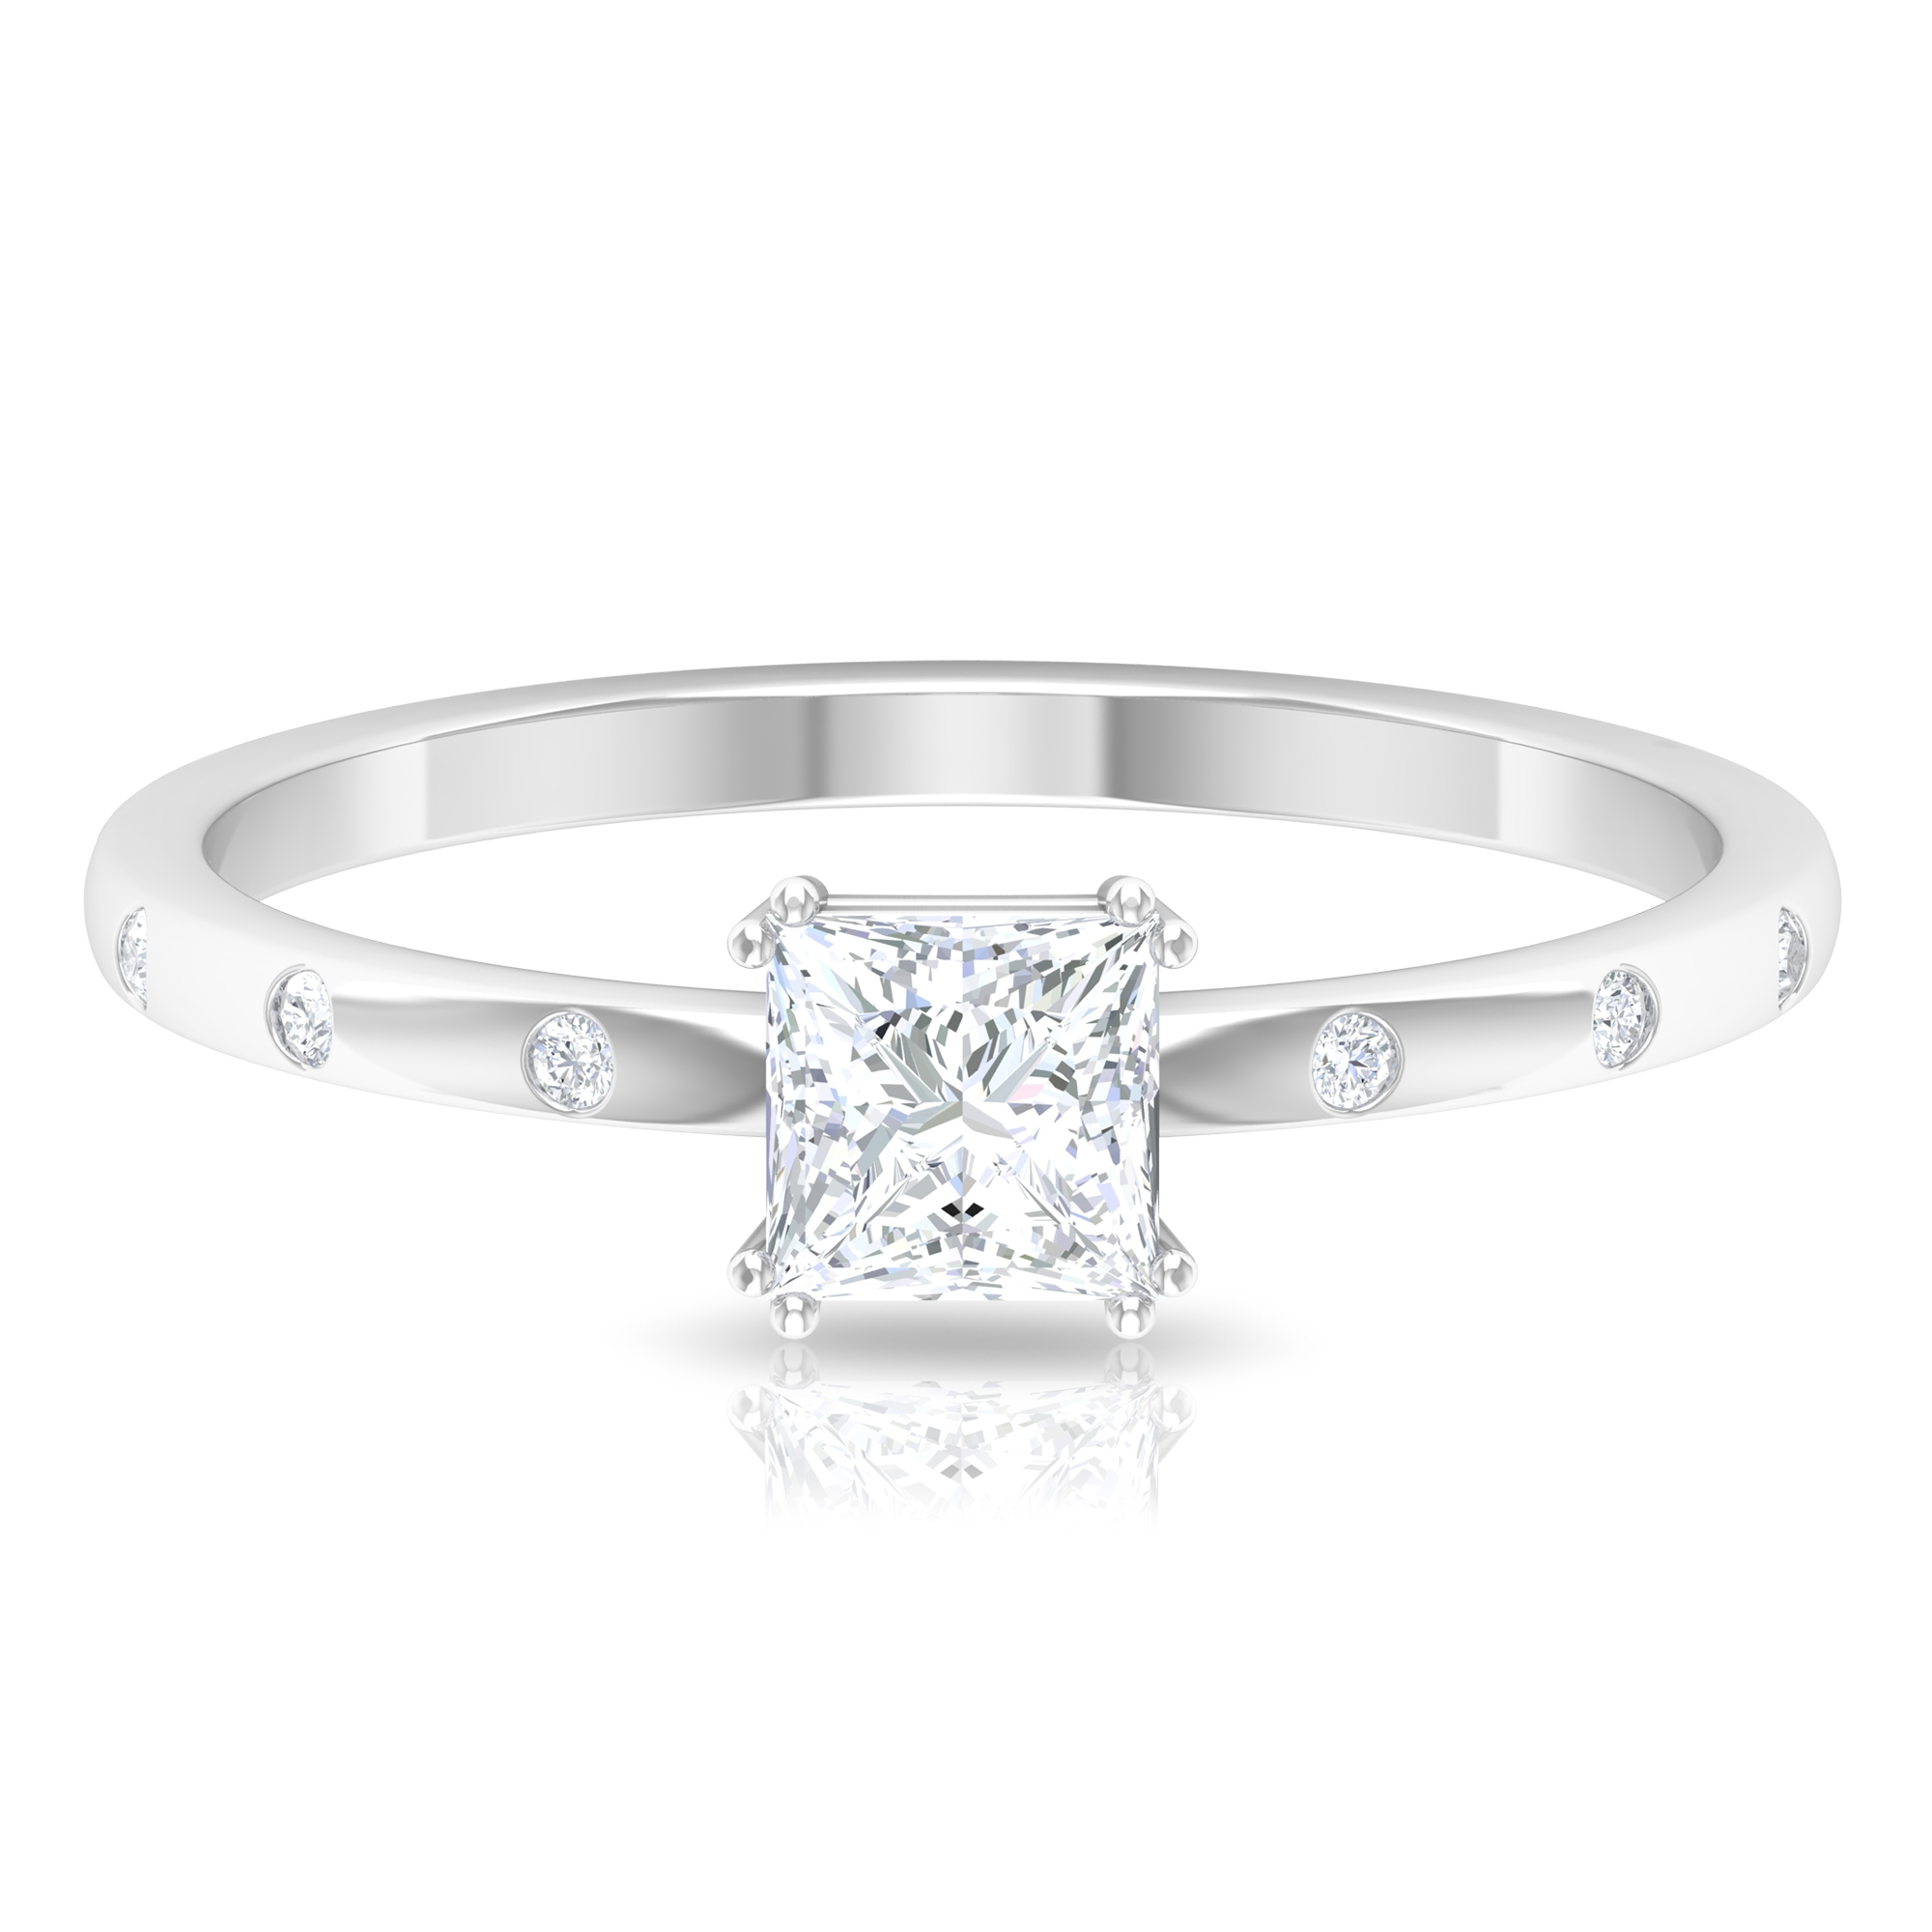 Double Prong Set 4.5 MM Princess Cut Solitaire Diamond Ring with Sleek Accent